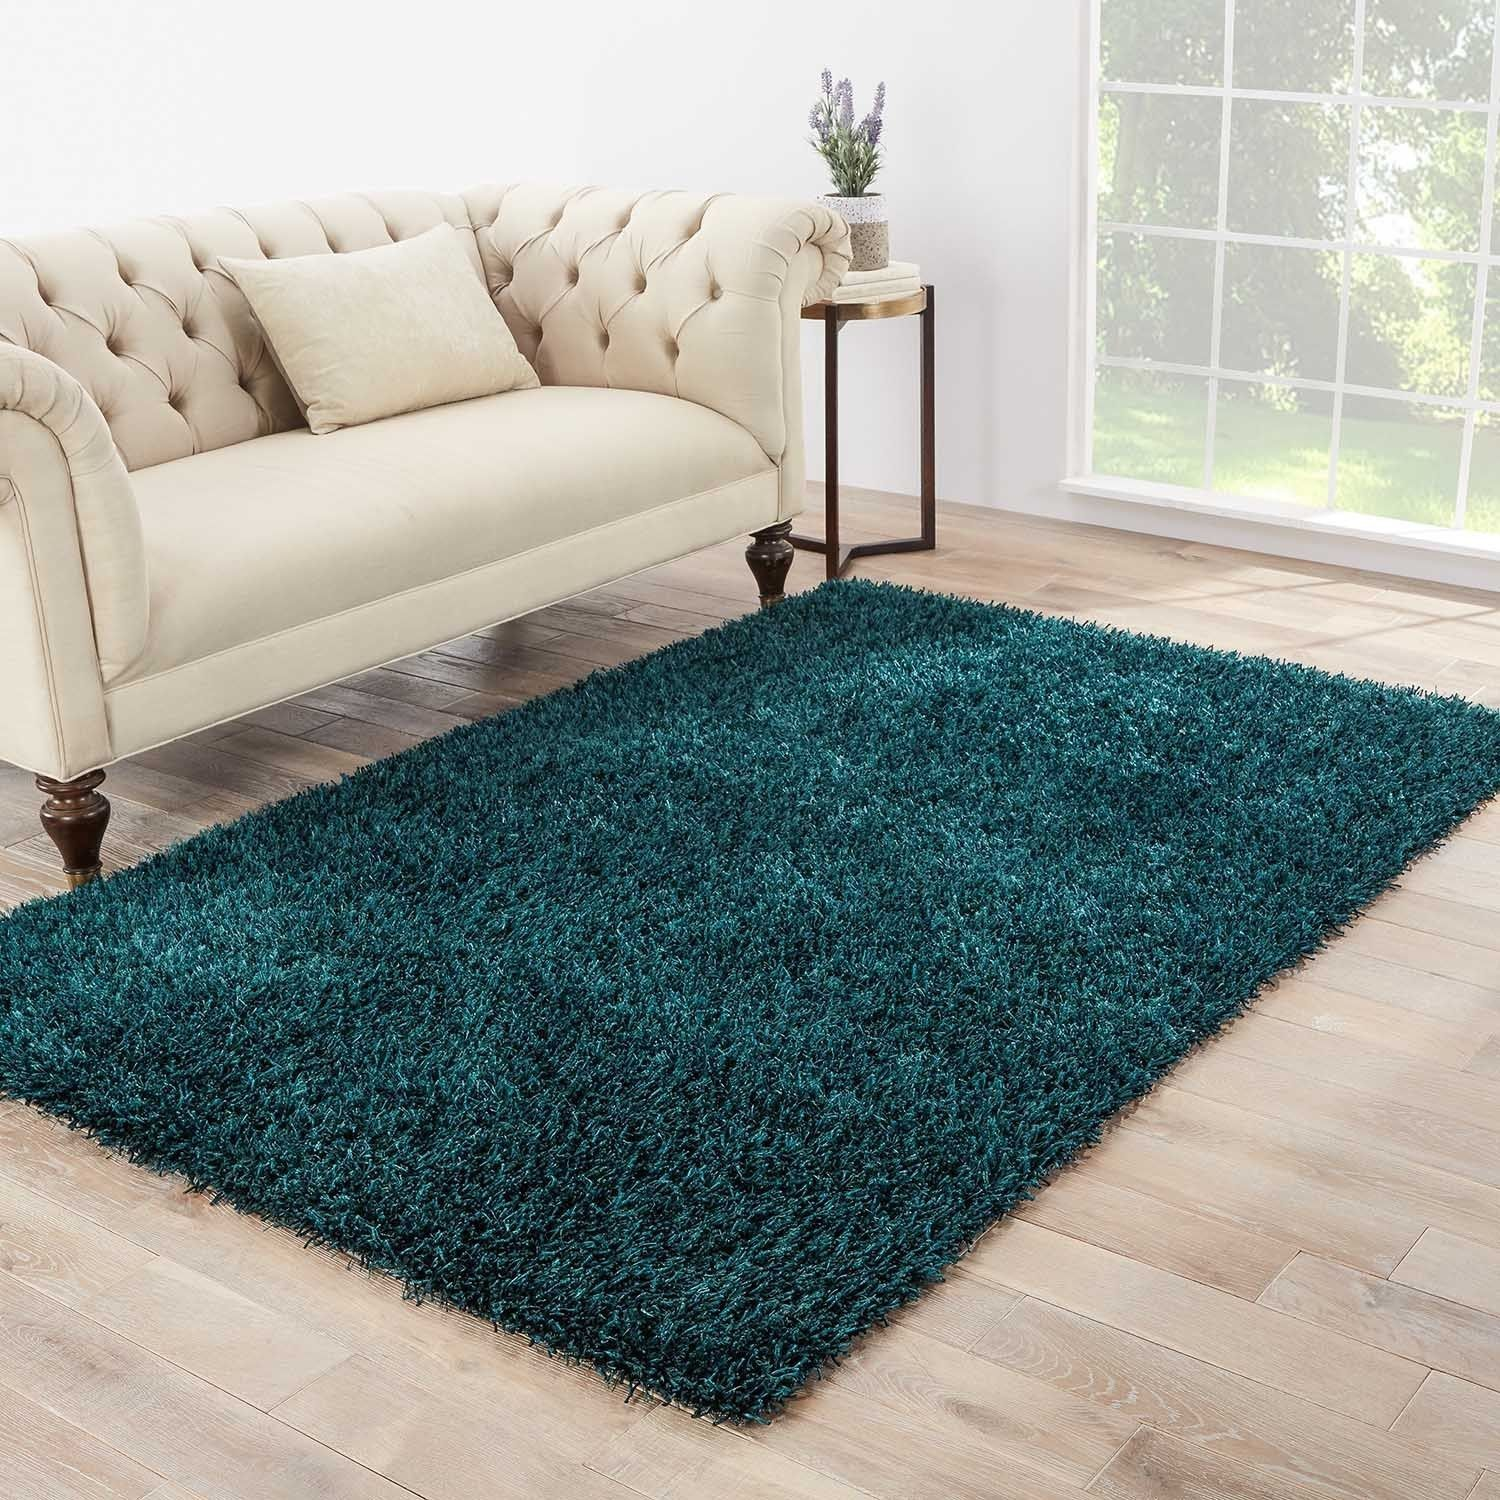 Juniper Home Vance Handmade Solid Dark Teal Blue Area Rug 2 X 3 Woven Shag Flux Polyester 2 X 3 Area Rugs Rugs Teal Rug